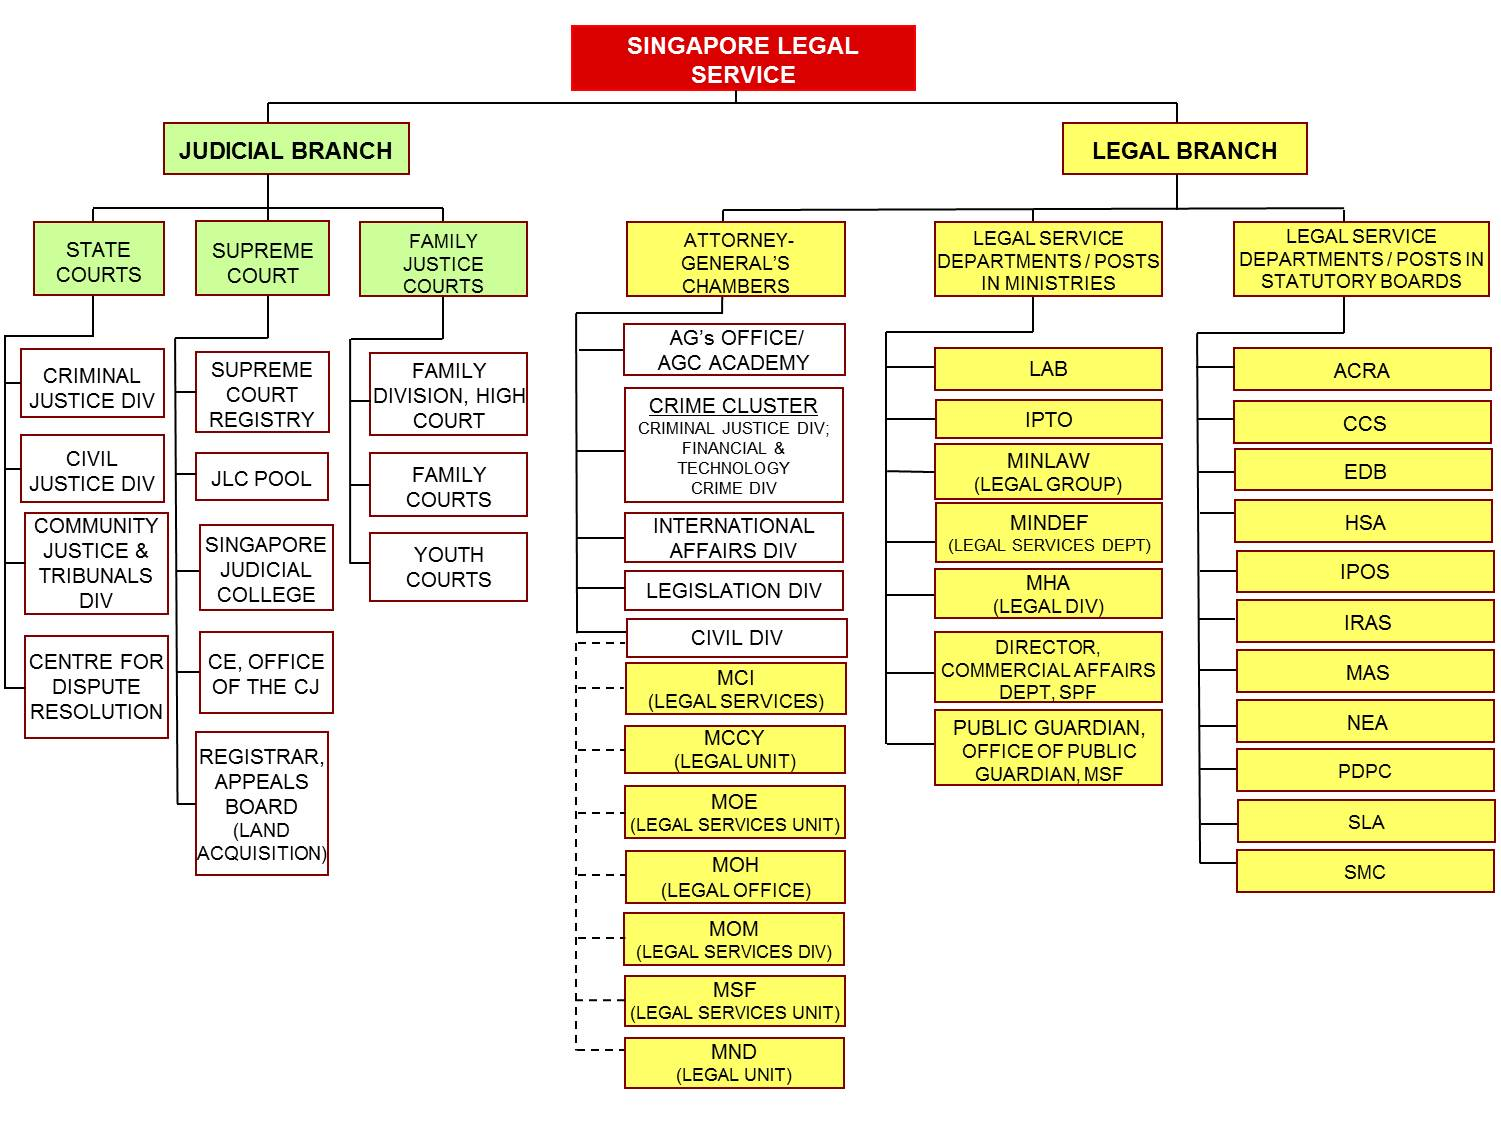 Structure of the singapore legal service the legal service consists of two branches the judicial branch and the legal branch lsos appointed to the legal service may be posted to either branch in nvjuhfo Image collections